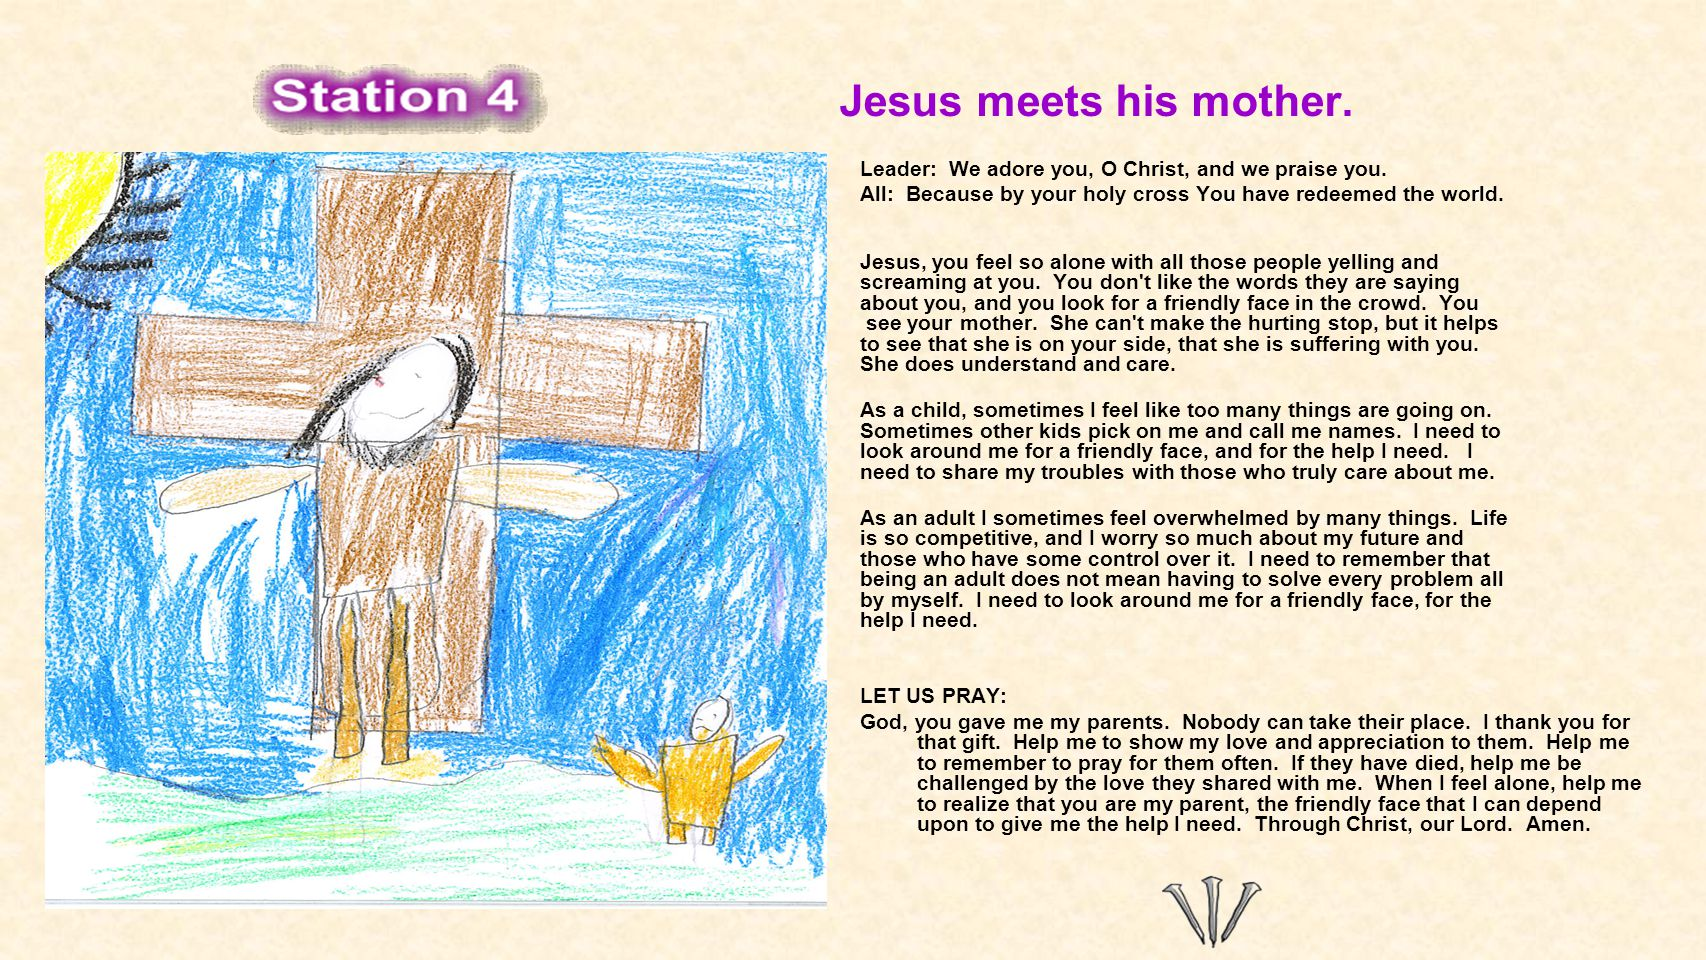 Jesus meets his mother. Leader: We adore you, O Christ, and we praise you.